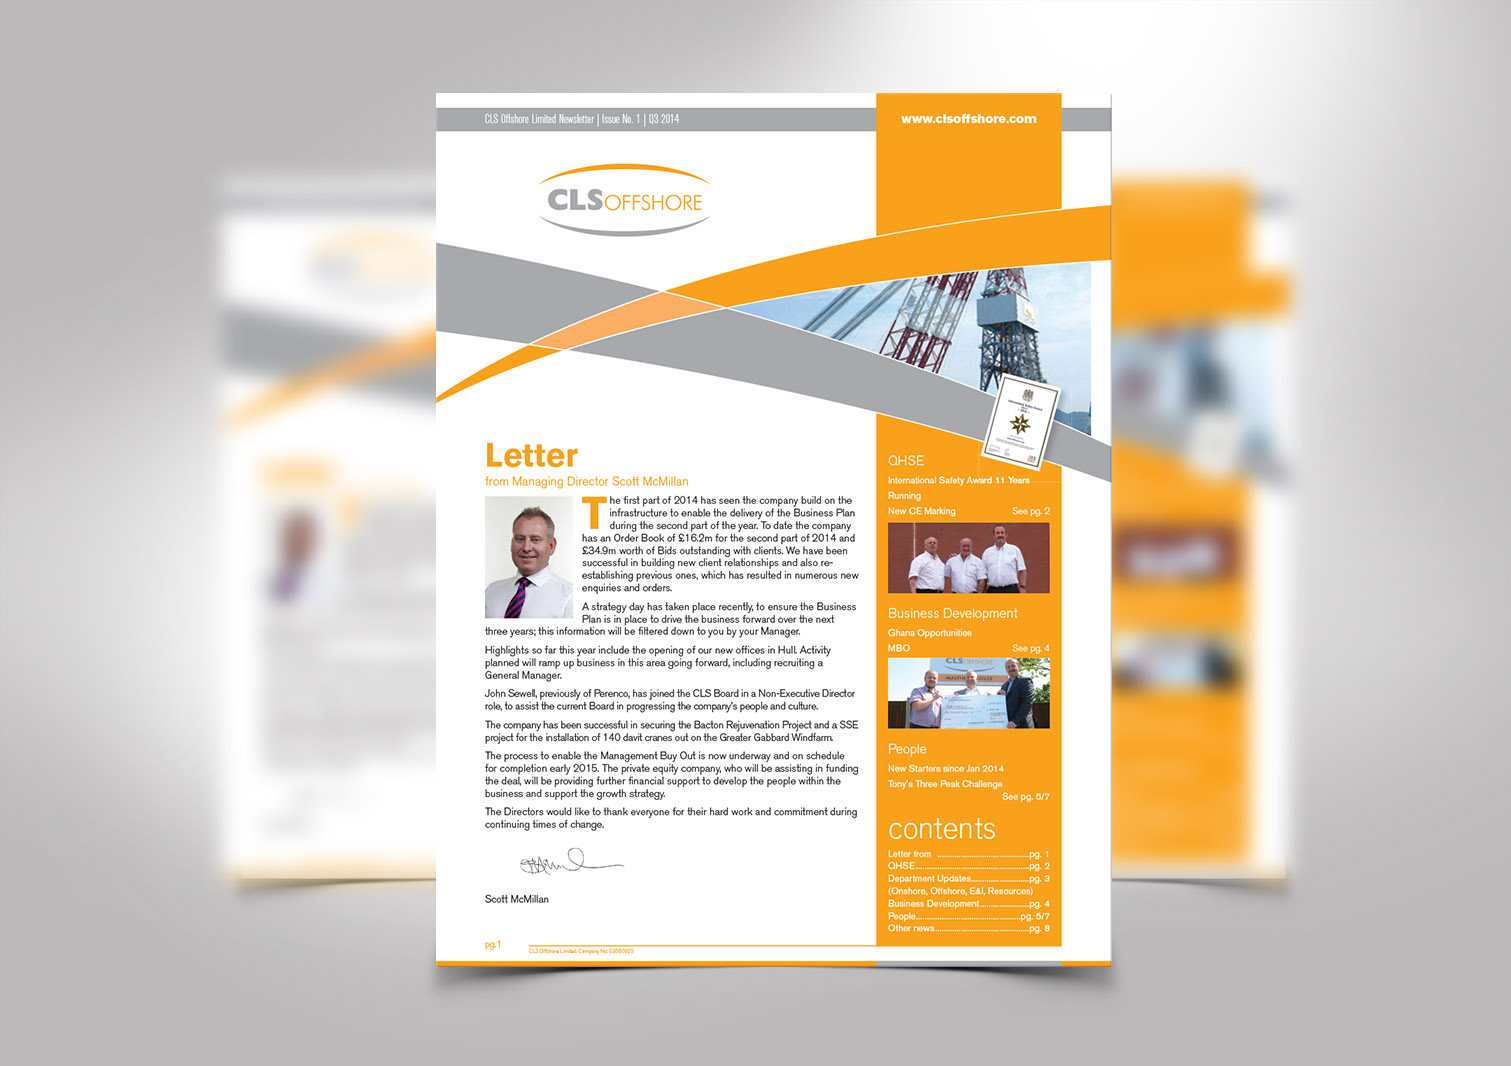 CLS Offshore Limited Newsletter